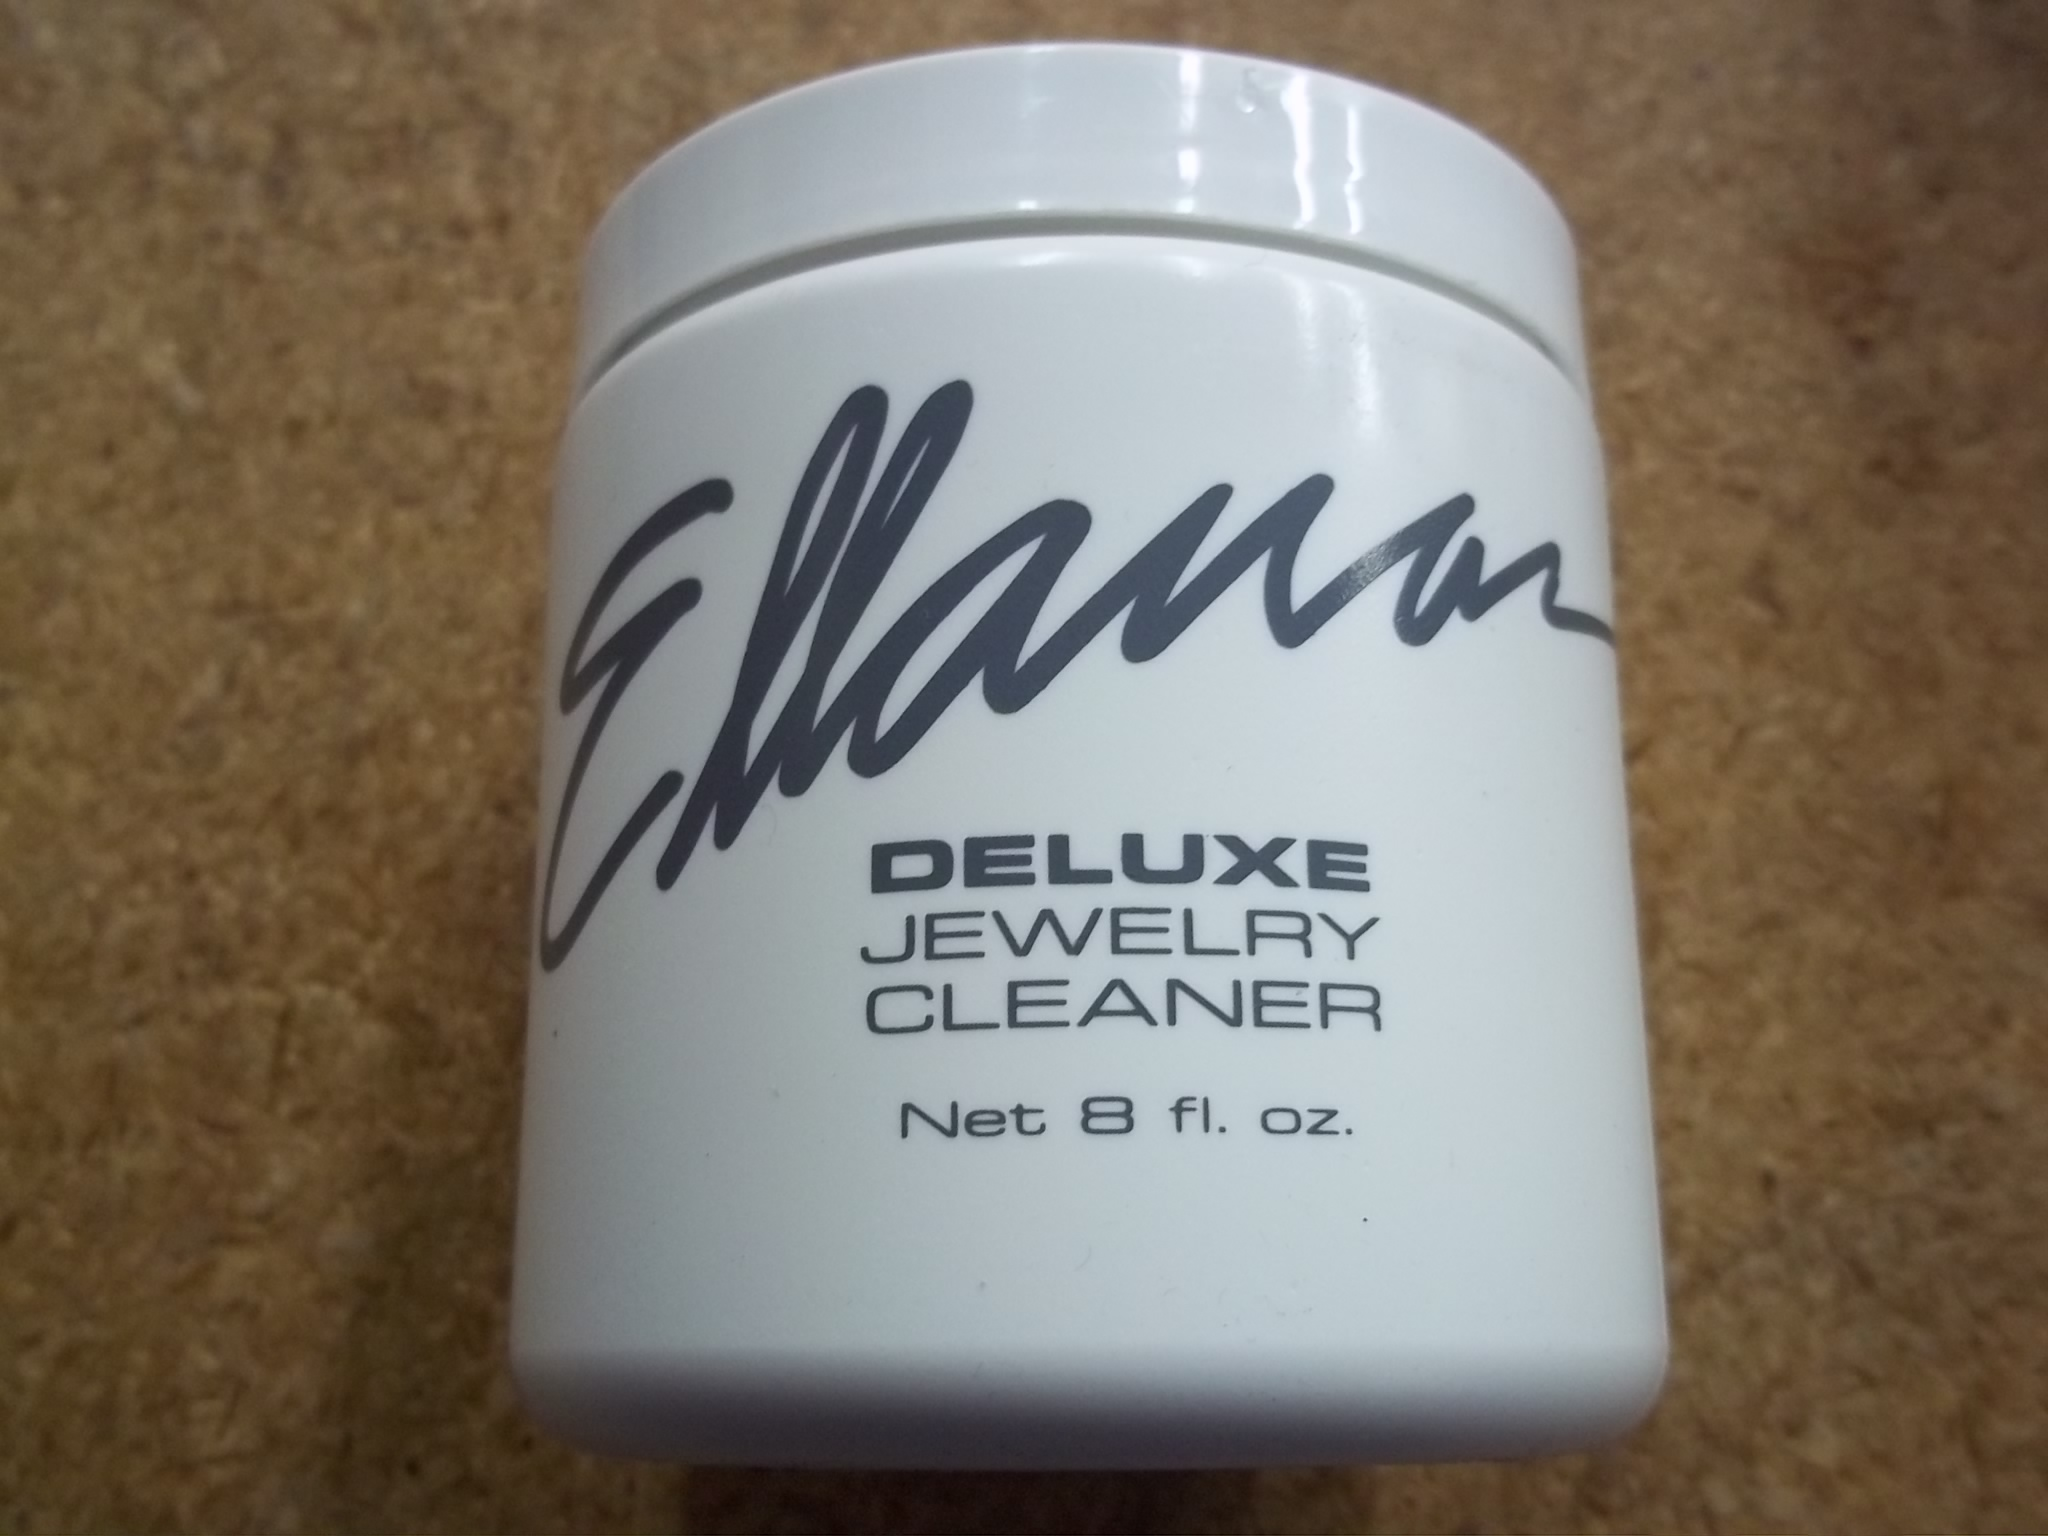 CL296/36 Ellanar Deluxe Jewelry Cleaner  8 fl. oz-- from L&R case of 36